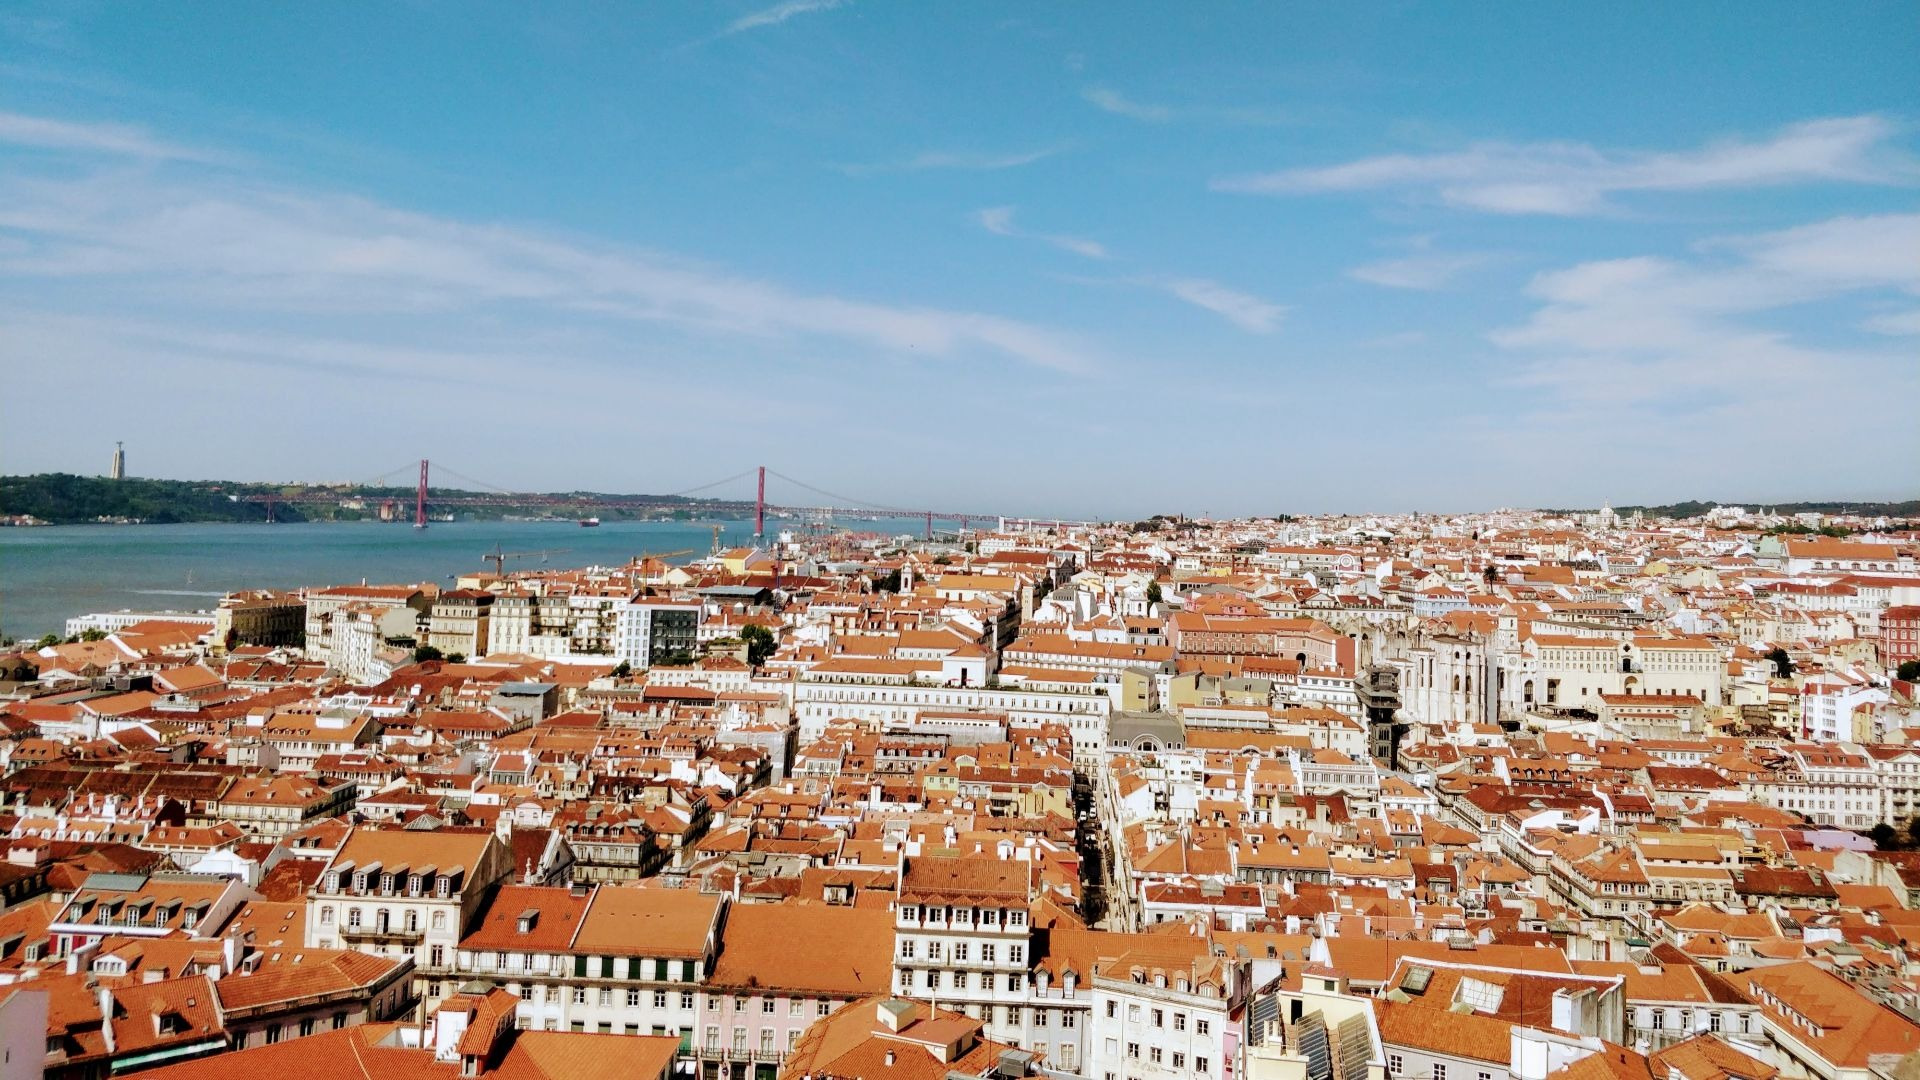 5 Days in Lisbon, Portugal: What to Do & See